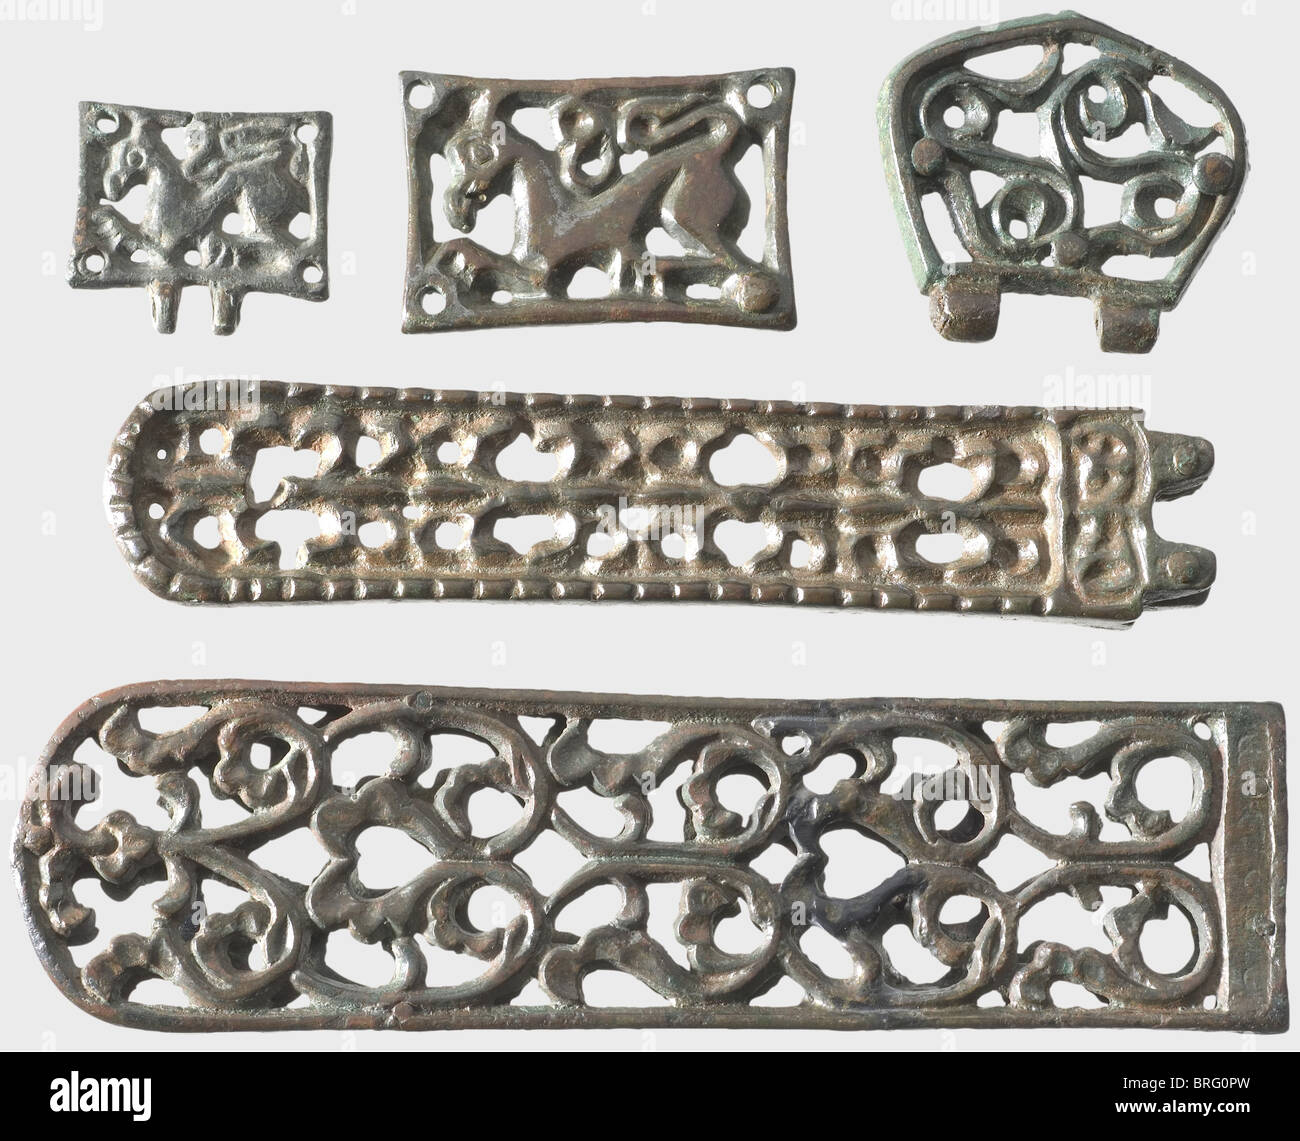 A set of Avar relics, Southeast Europe, 5th/6th century A.C. Bronze with greenish-brown patina. 22 different pieces, Stock Photo